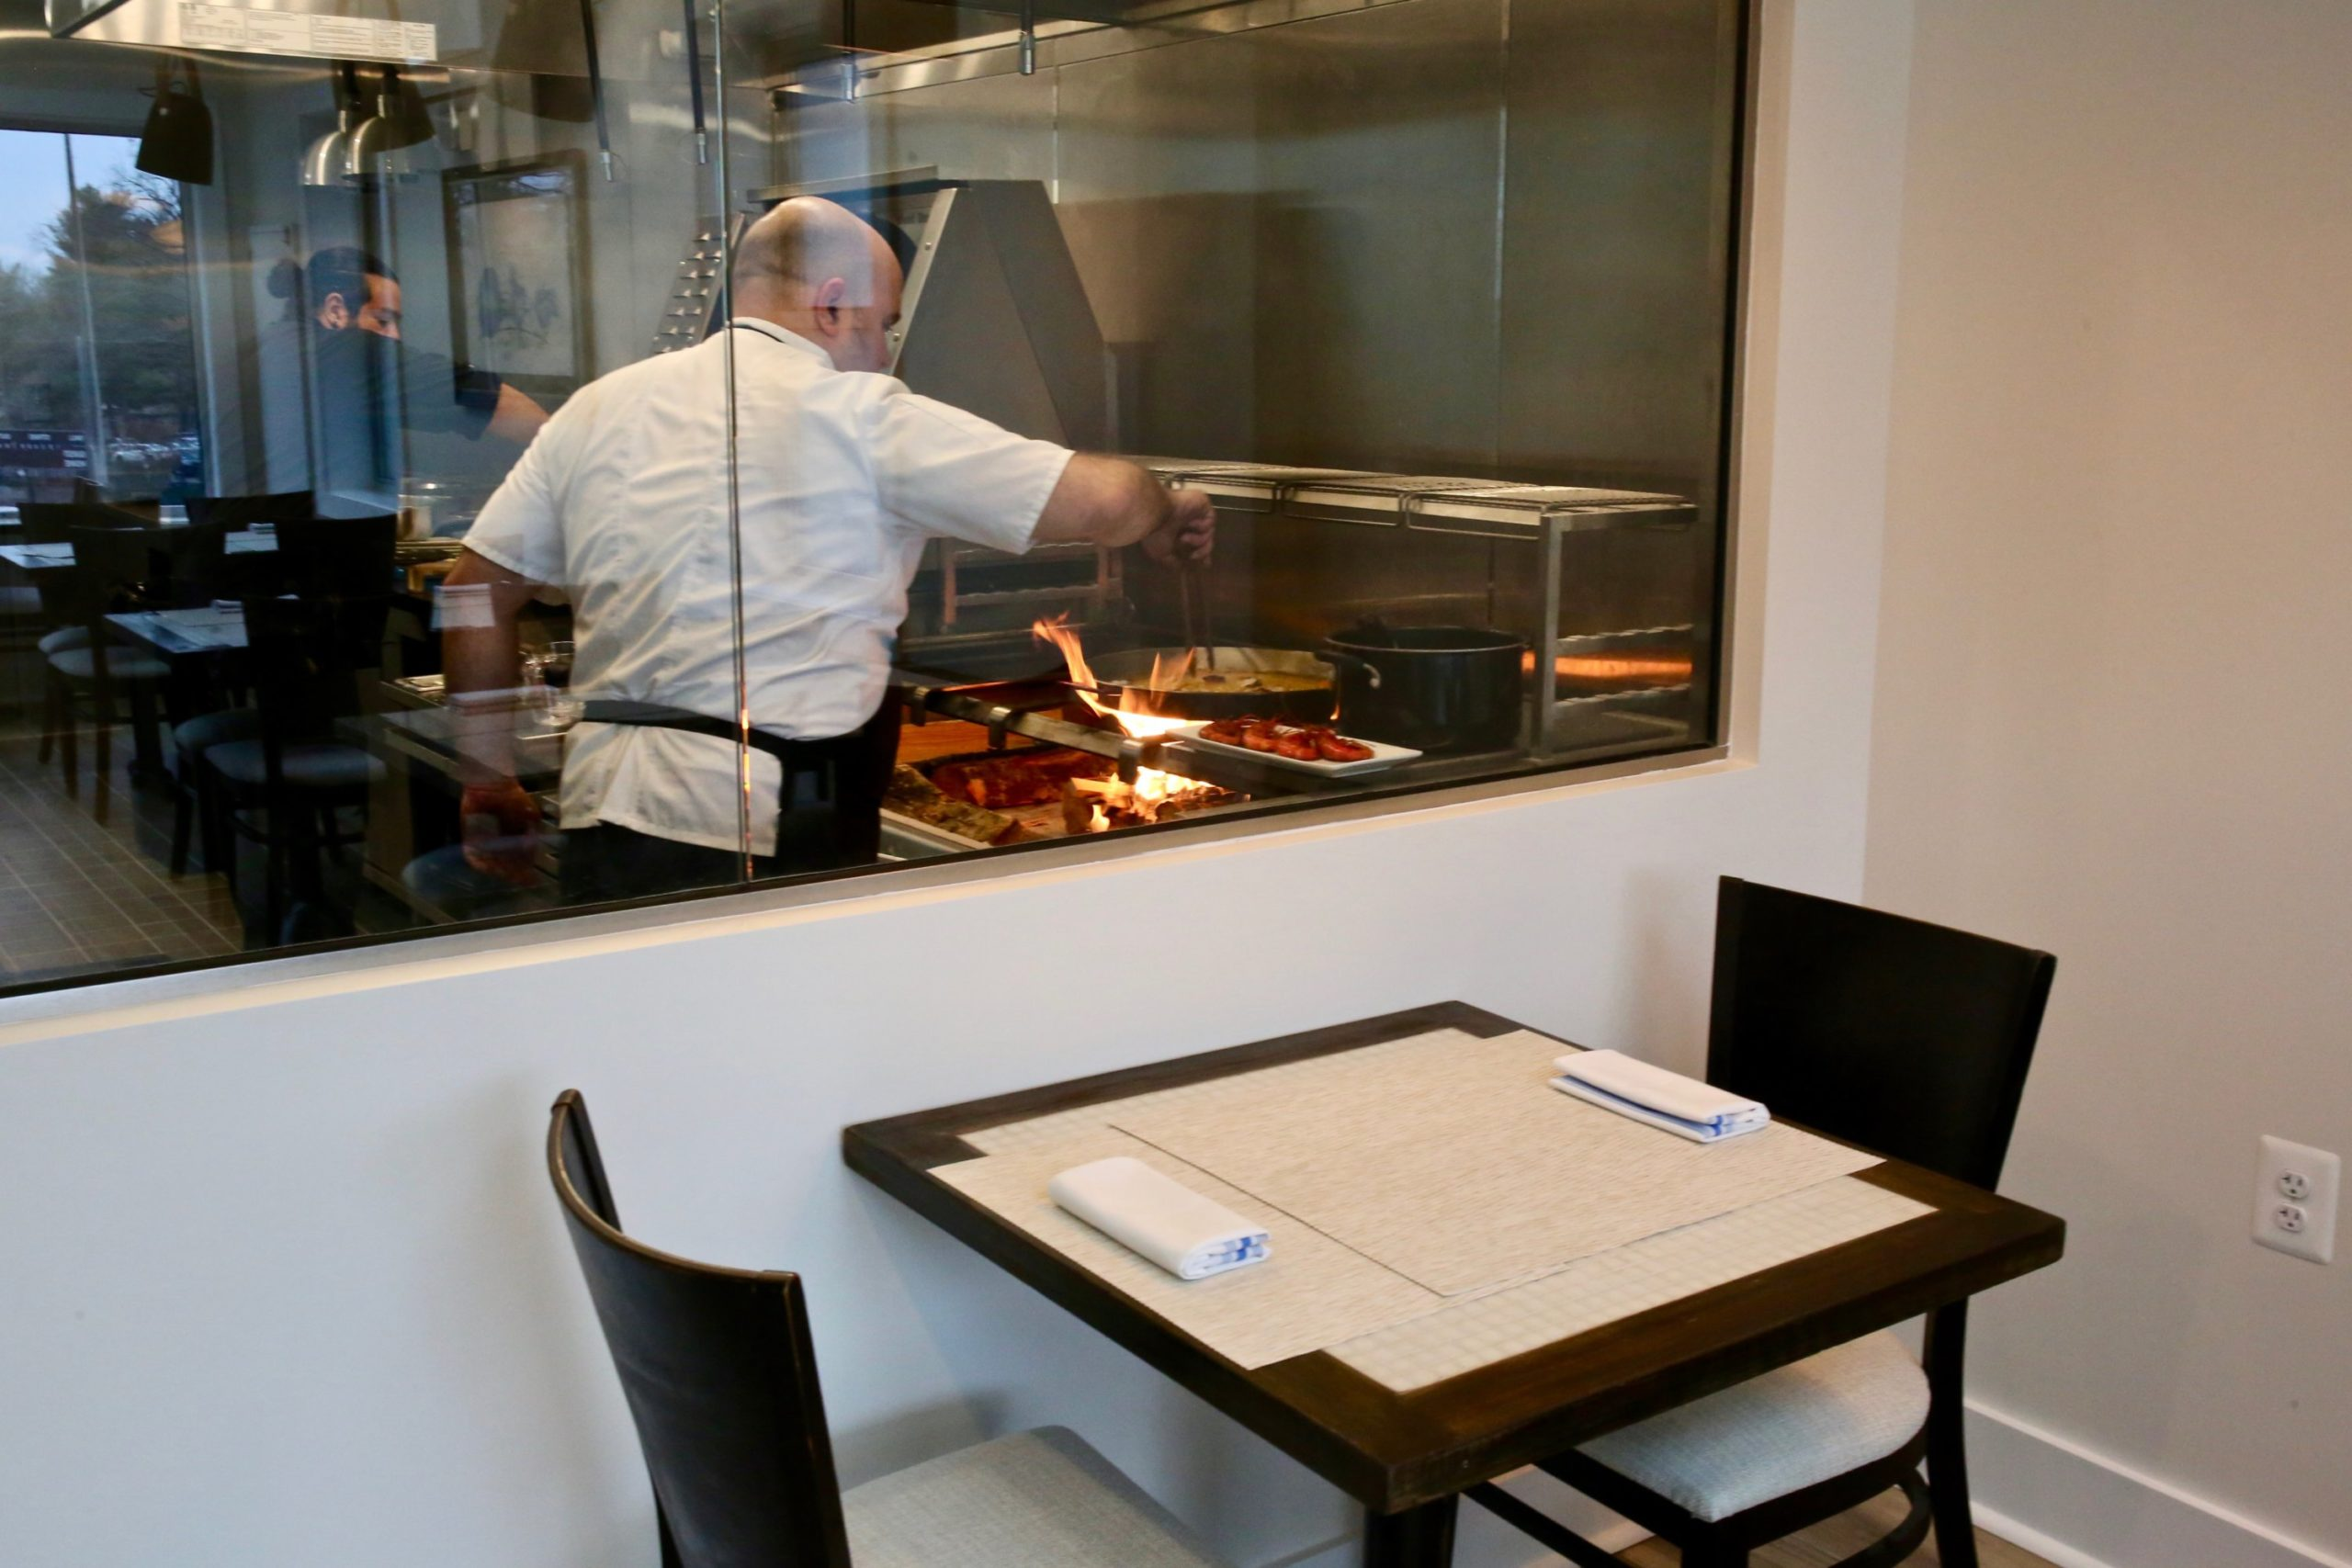 Chef Danny Lledó cooks paella in the glass-enclosed kitchen. Photo by Evy Mages.